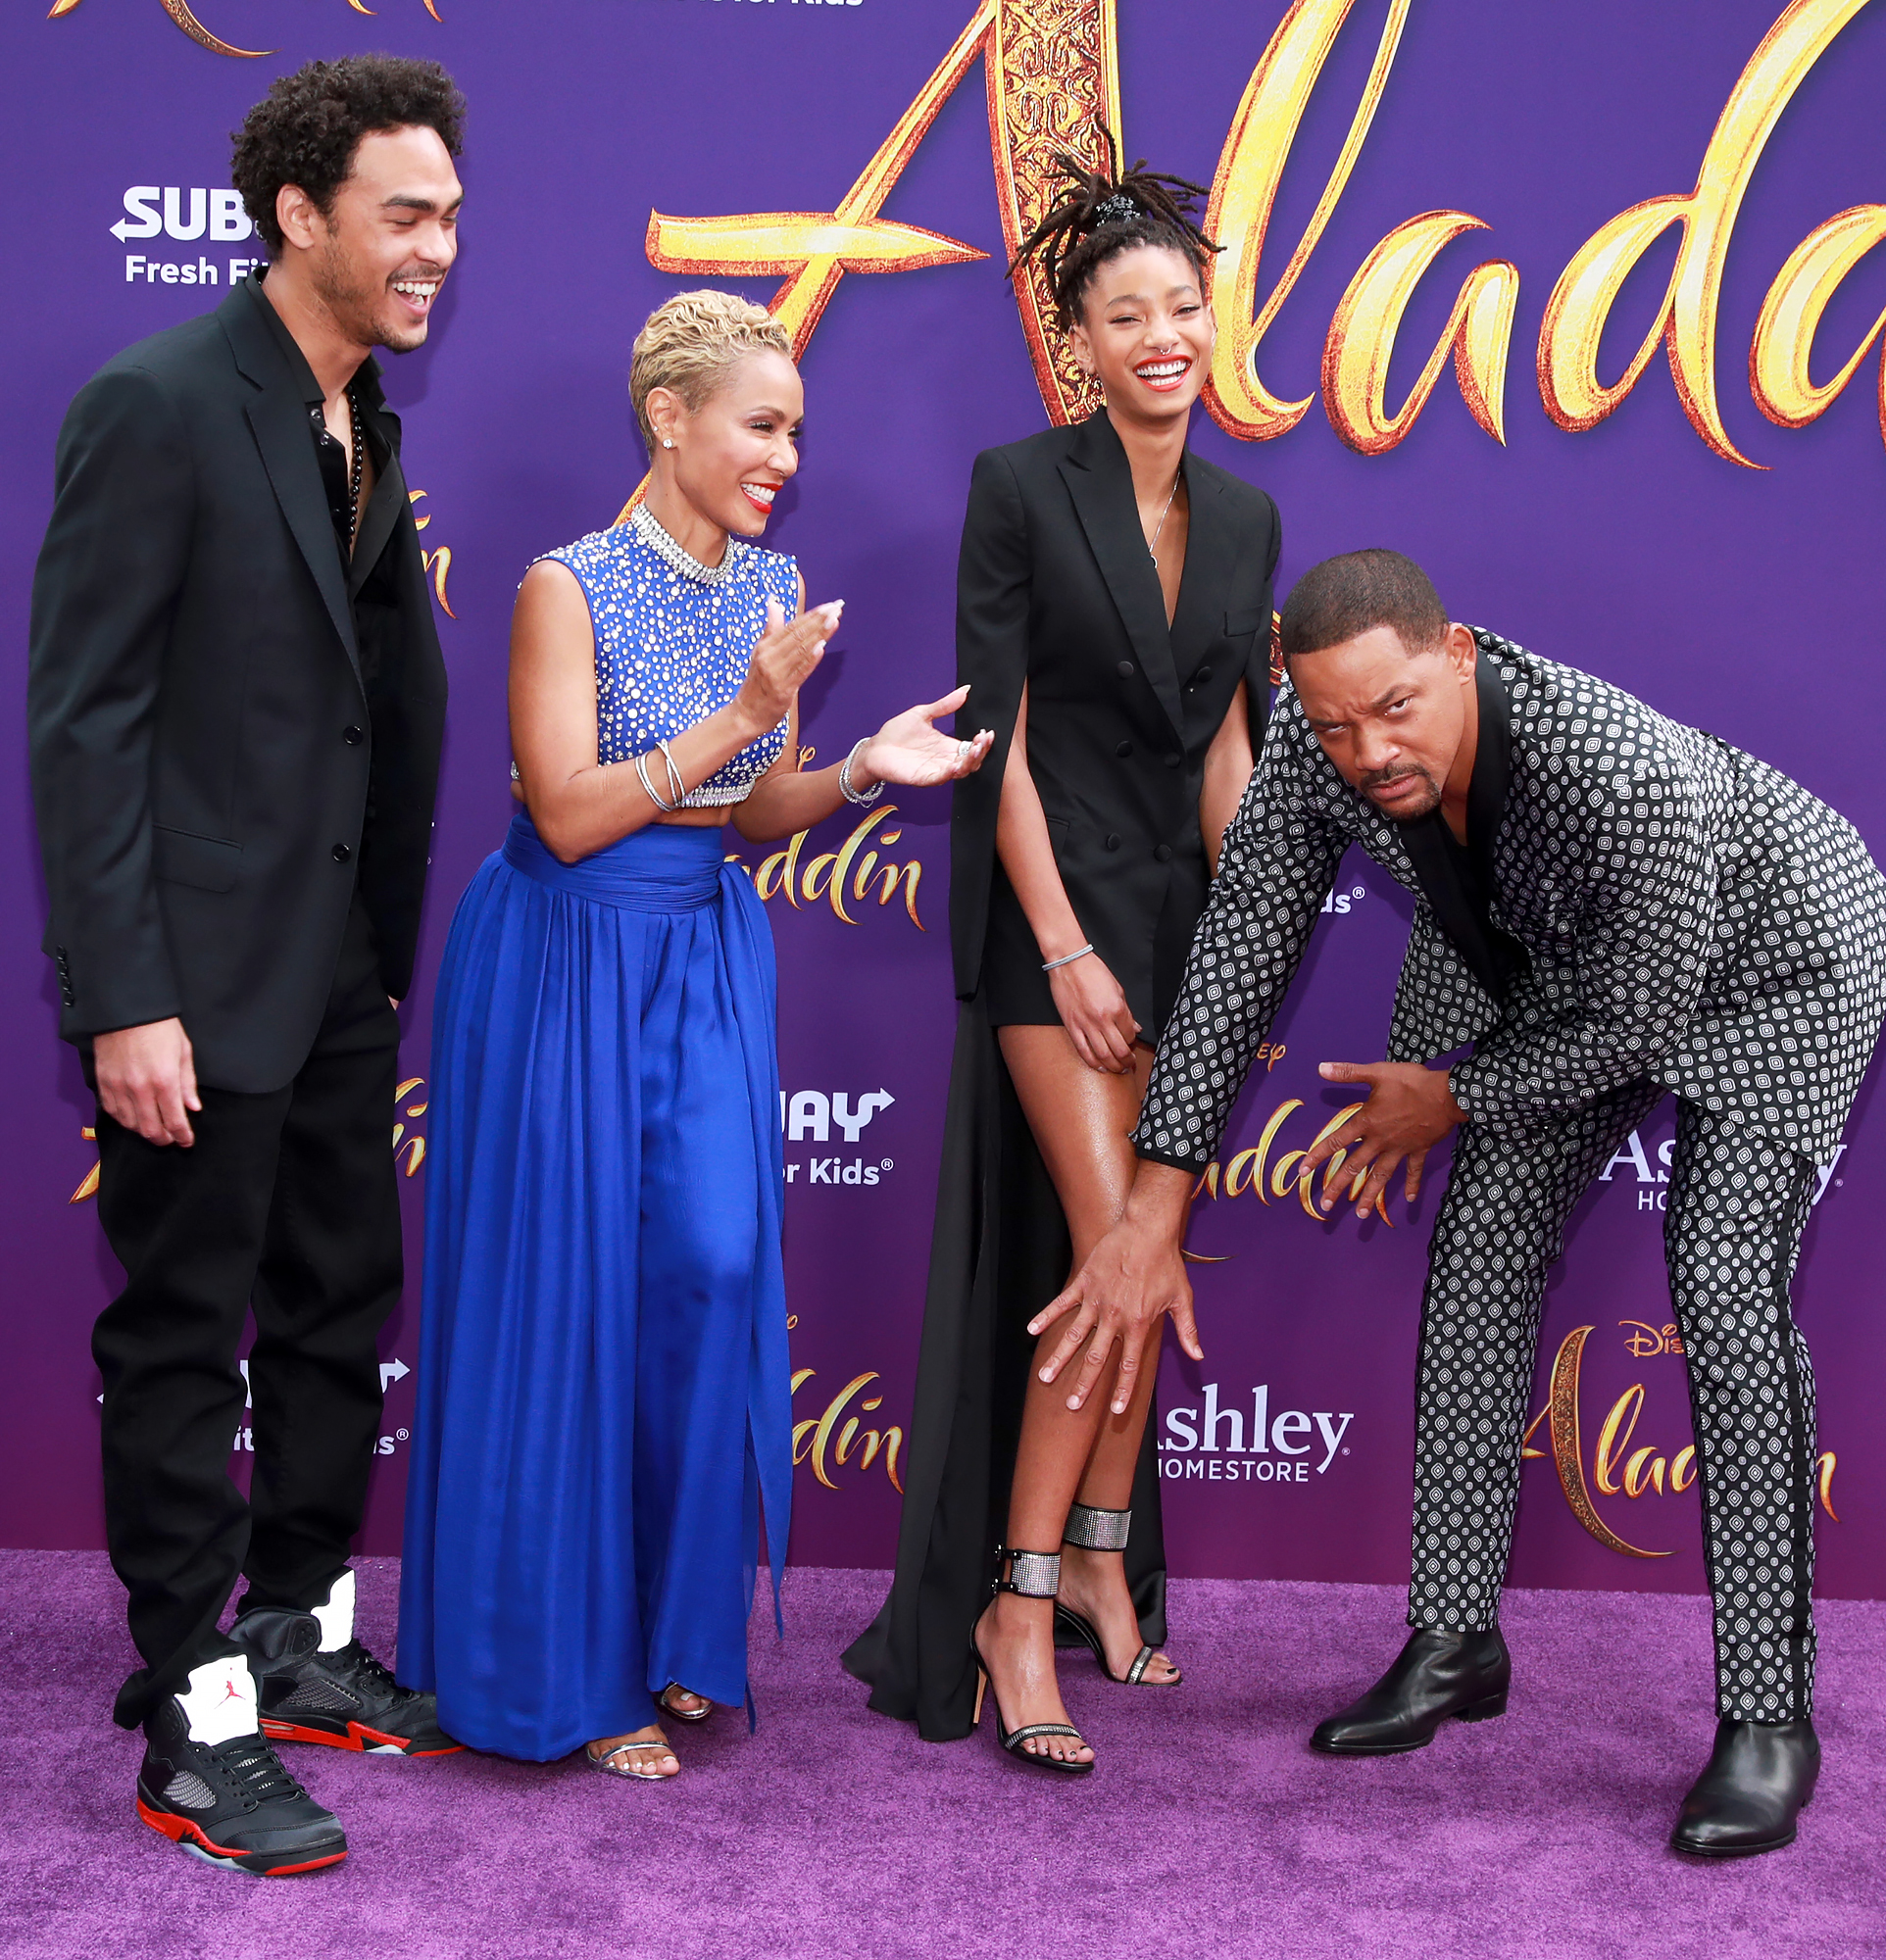 Trey-Smith,-Jada-Pinkett-Smith,-Willow-Smith-and-Will-Smith-Aladdin-premiere-3 - Will jokingly hid Willow's legs from the cameras.